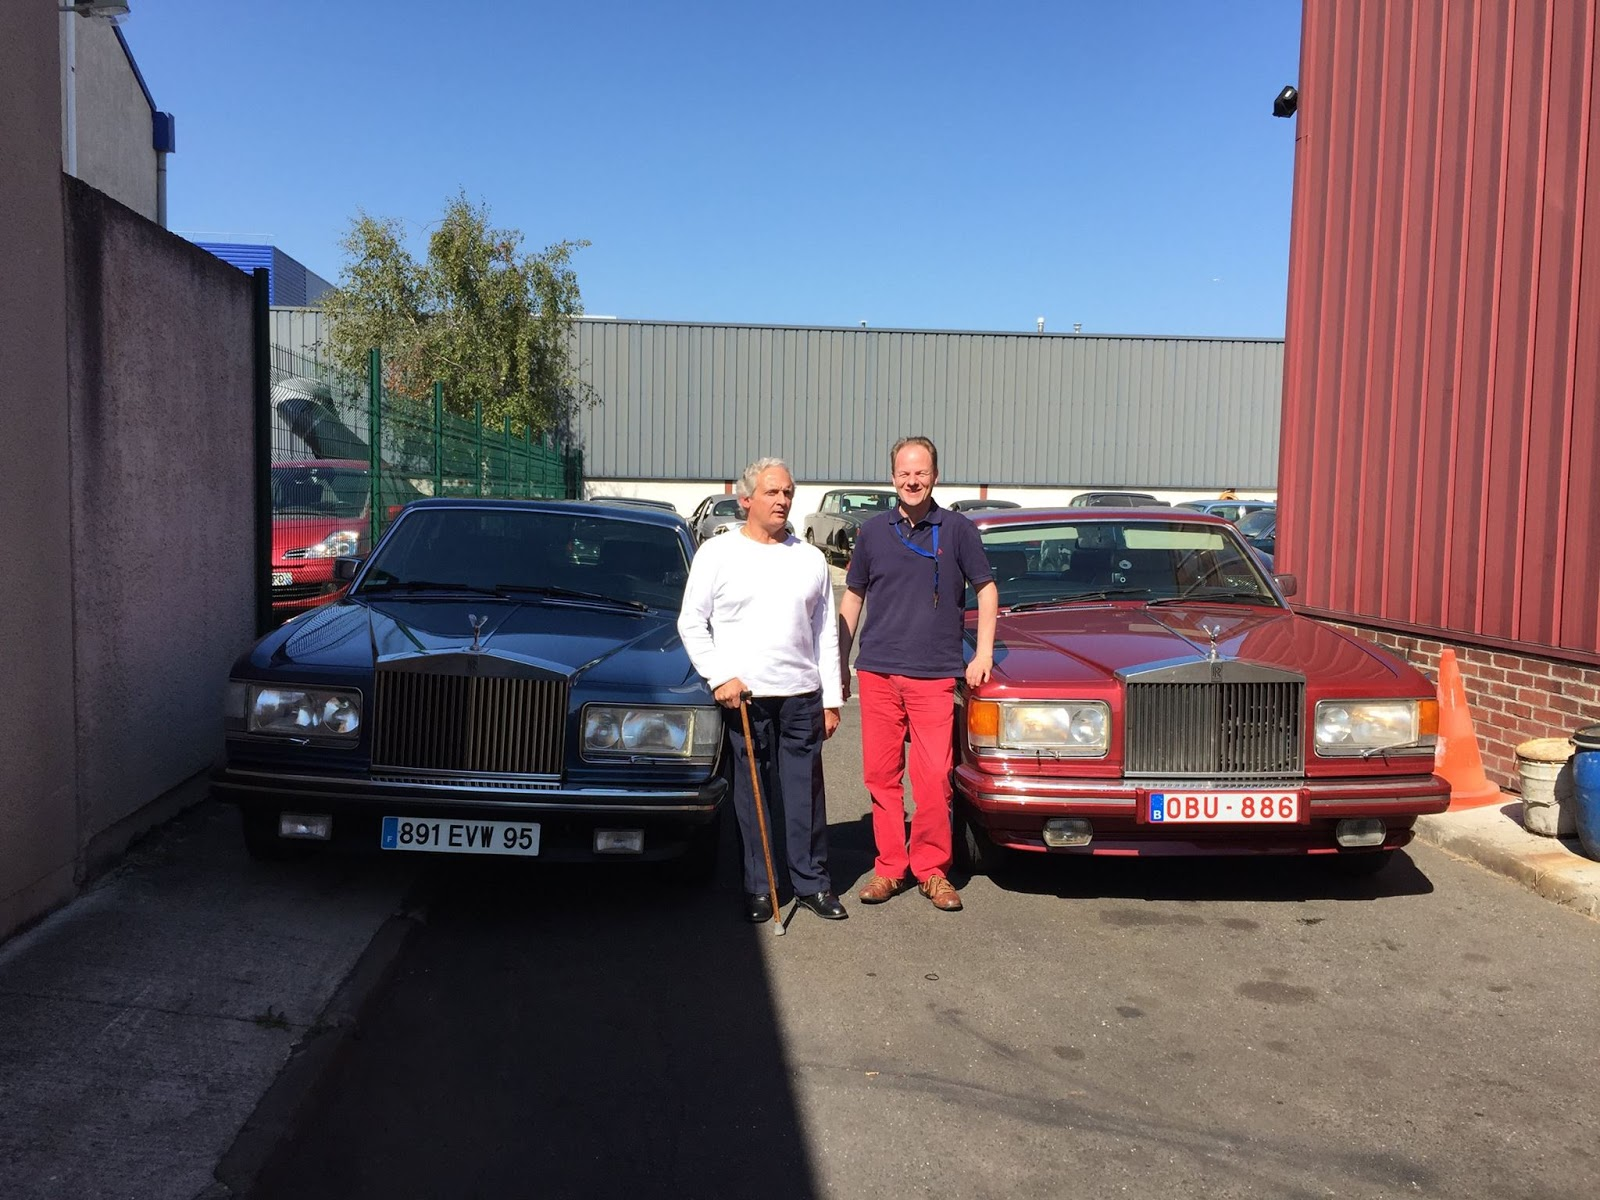 Rolls royce bentley garage americo paris argenteuil for Garage paris club